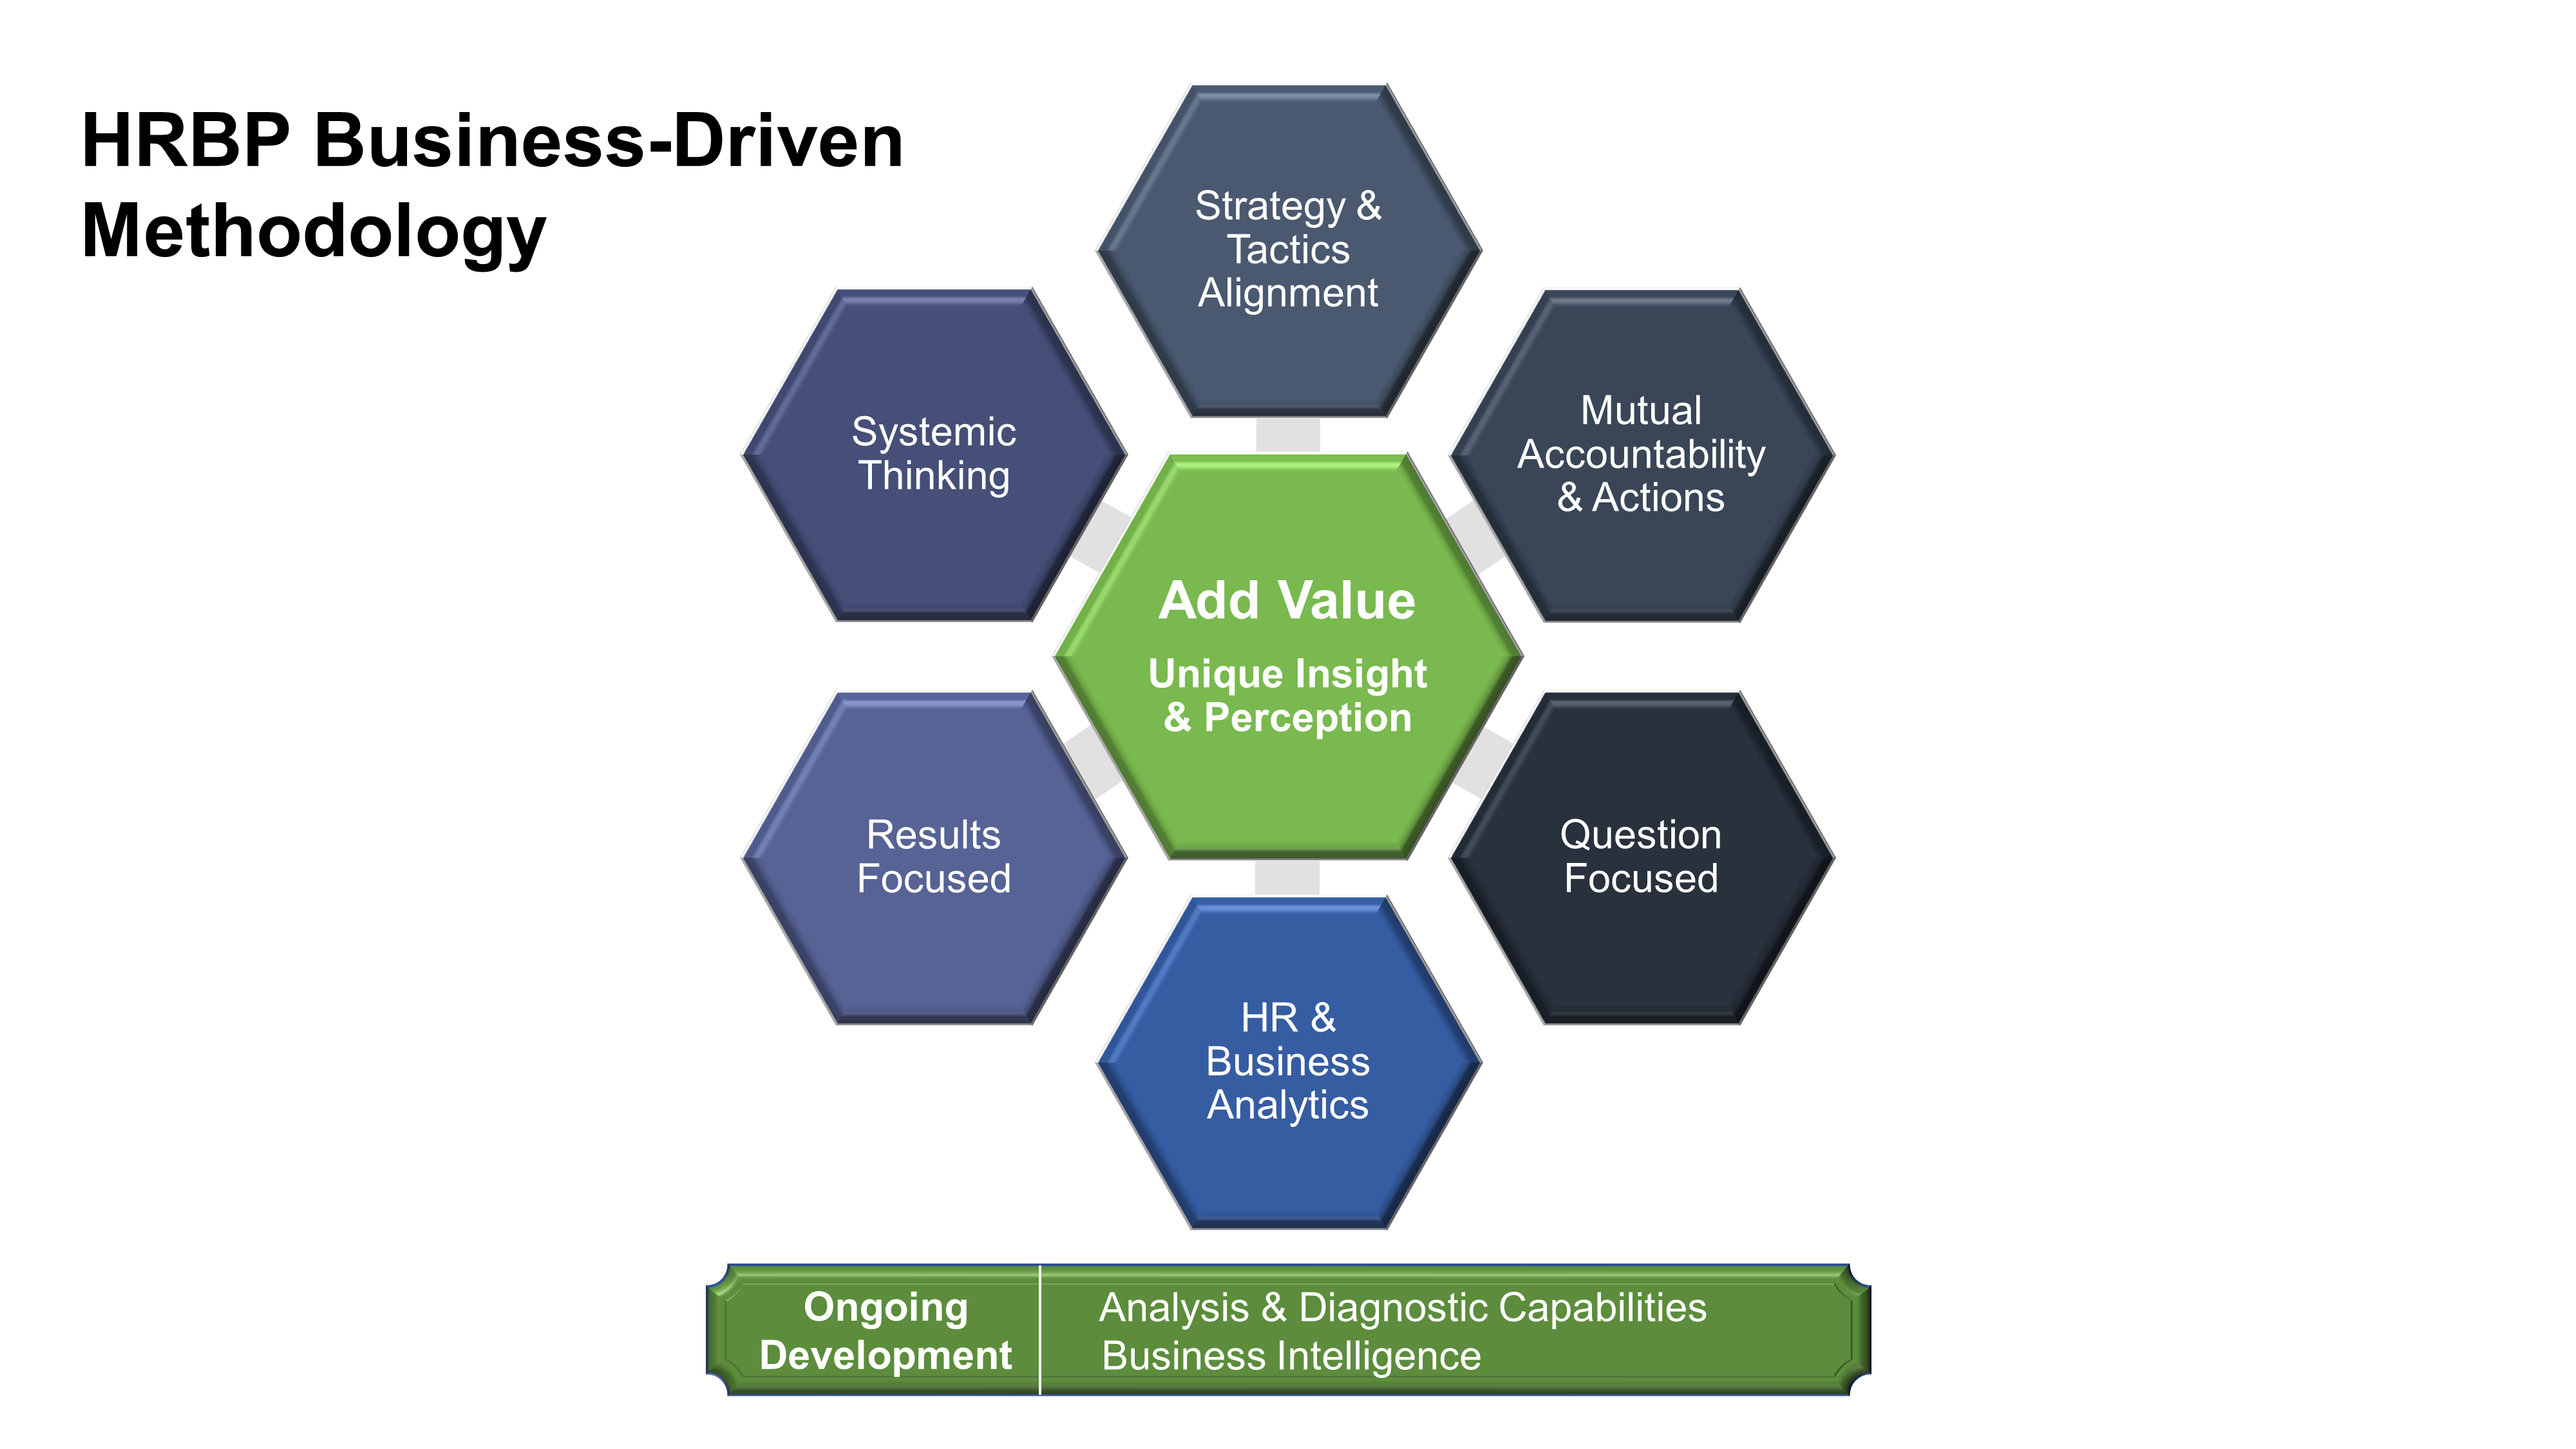 Image of 8 principles that collectively are the HRBP Business-Driven Methodology